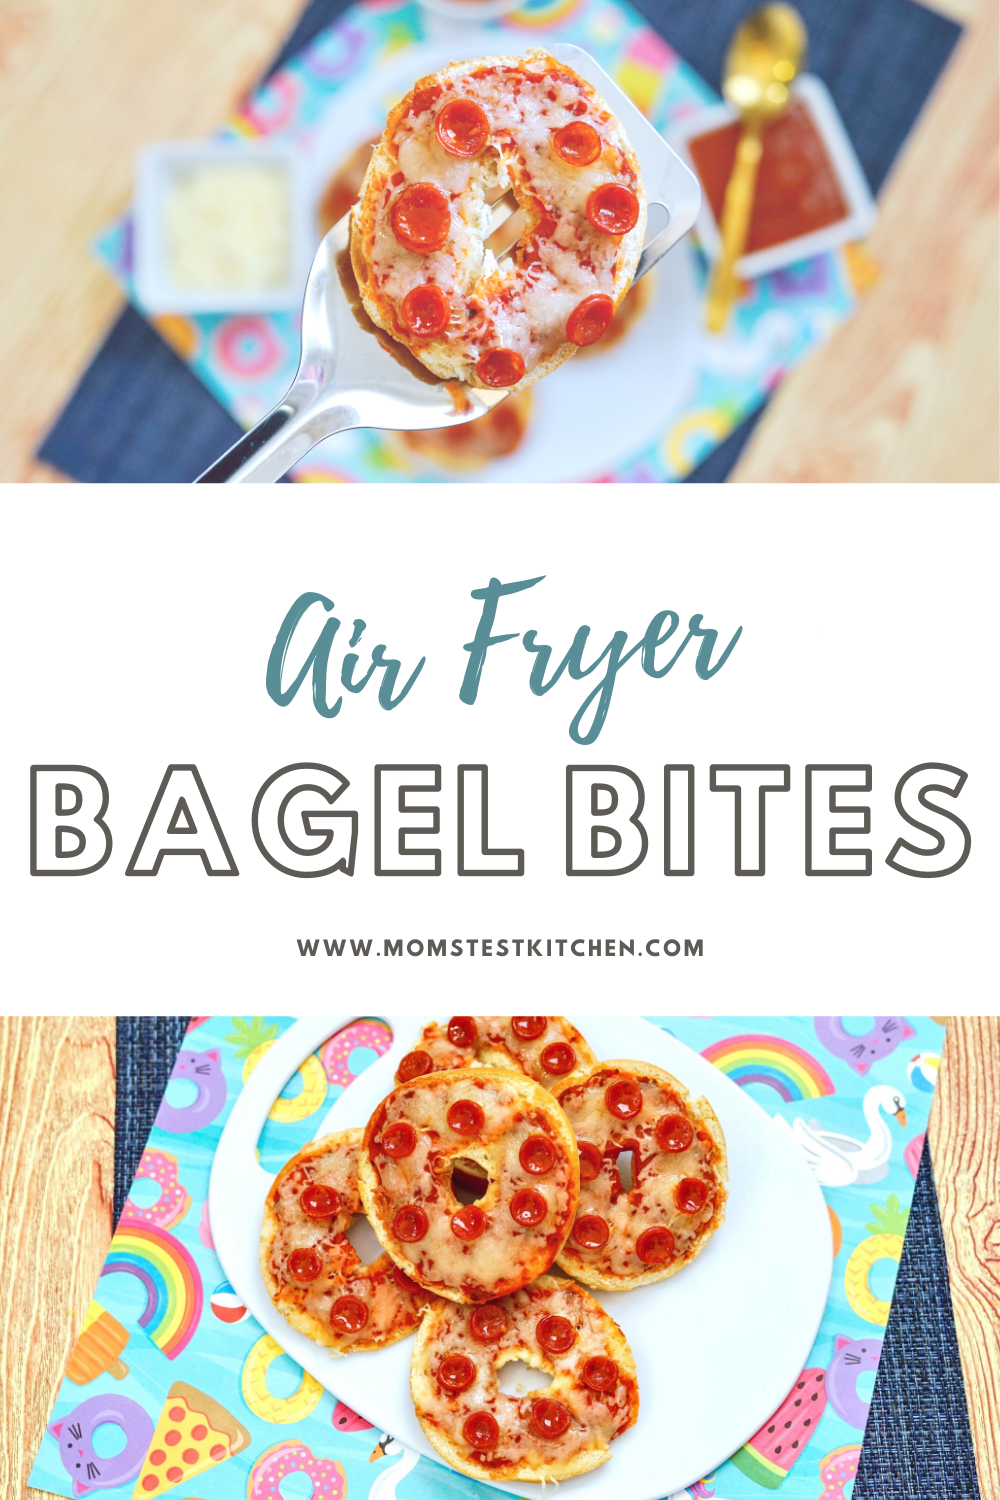 The kids are going to love these Homemade 4-ingredient Air Fryer Bagel Bites! Since they take only 5 minutes to cook, they are the perfect solution for an easy lunch or afternoon snack!